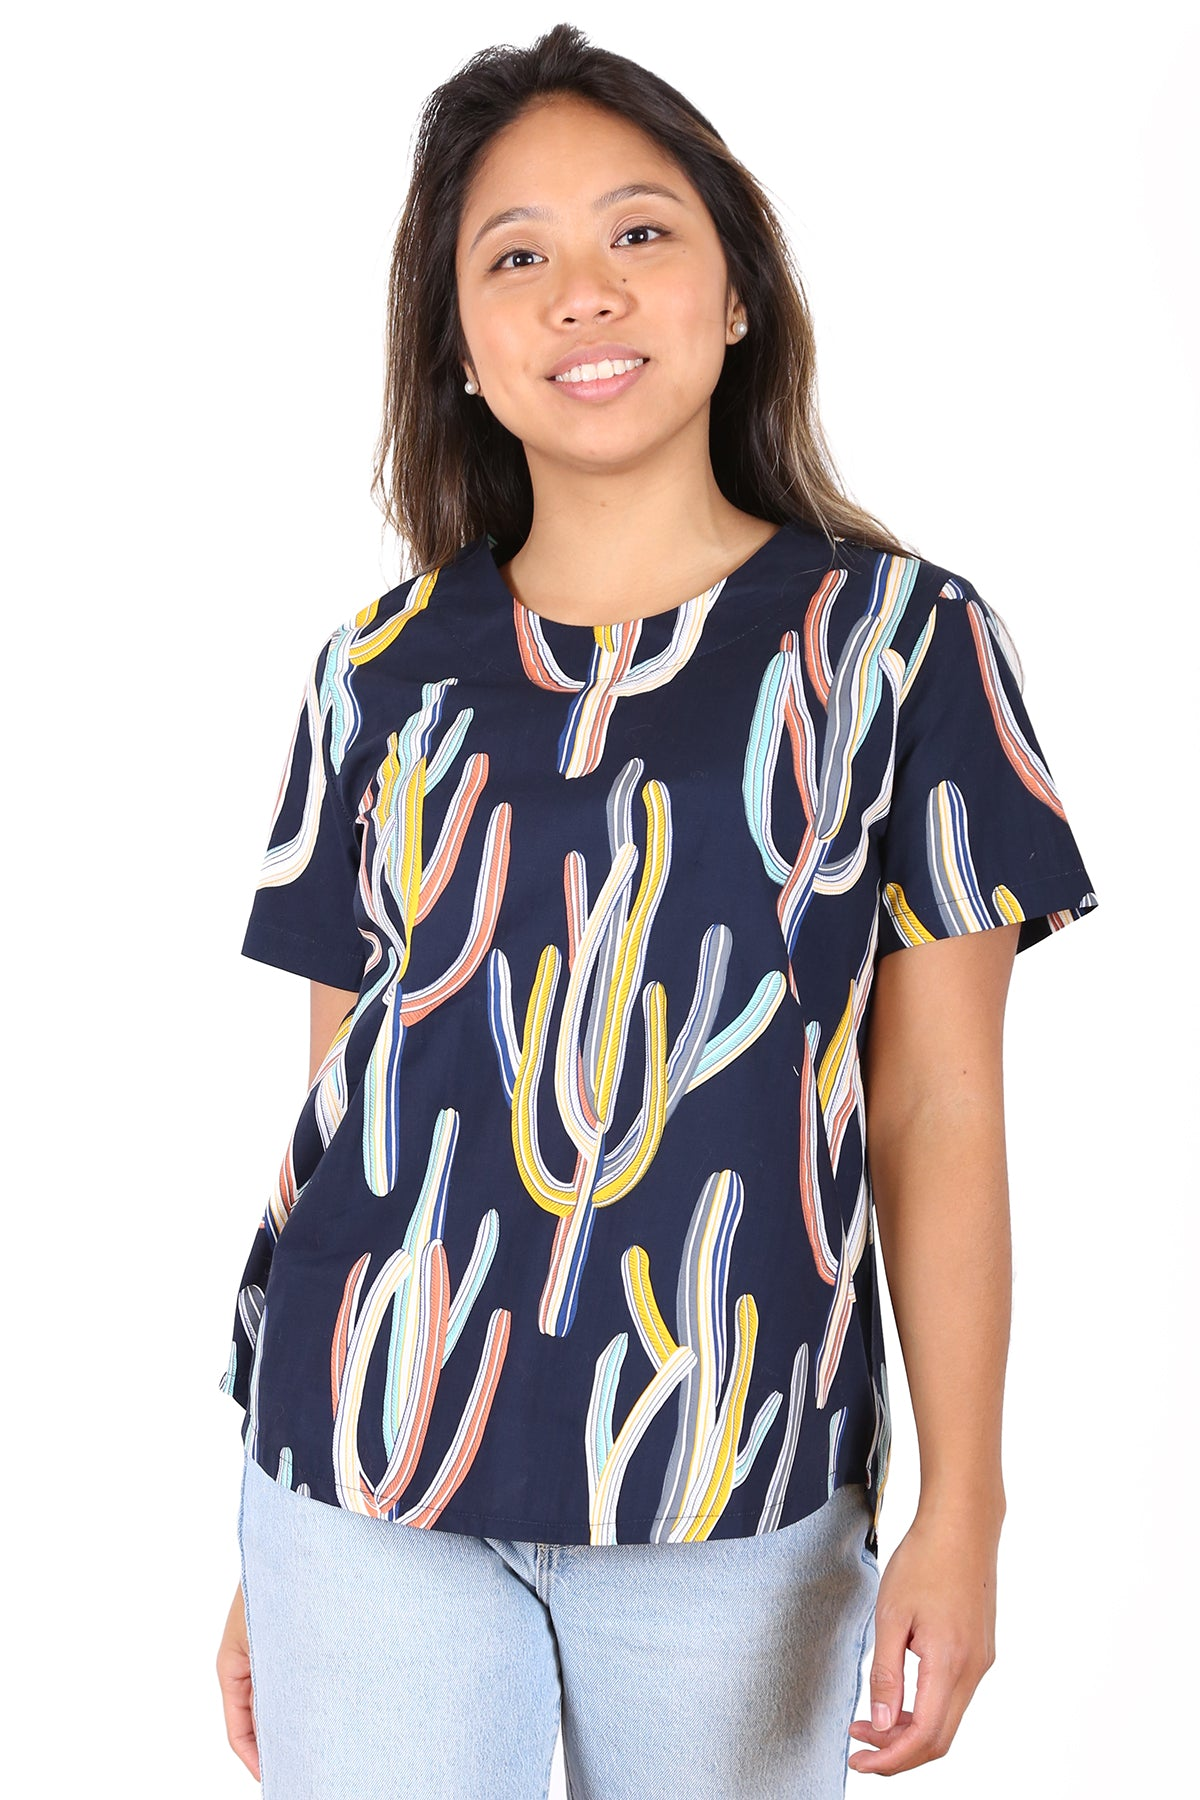 Go West Cotton Top Navy